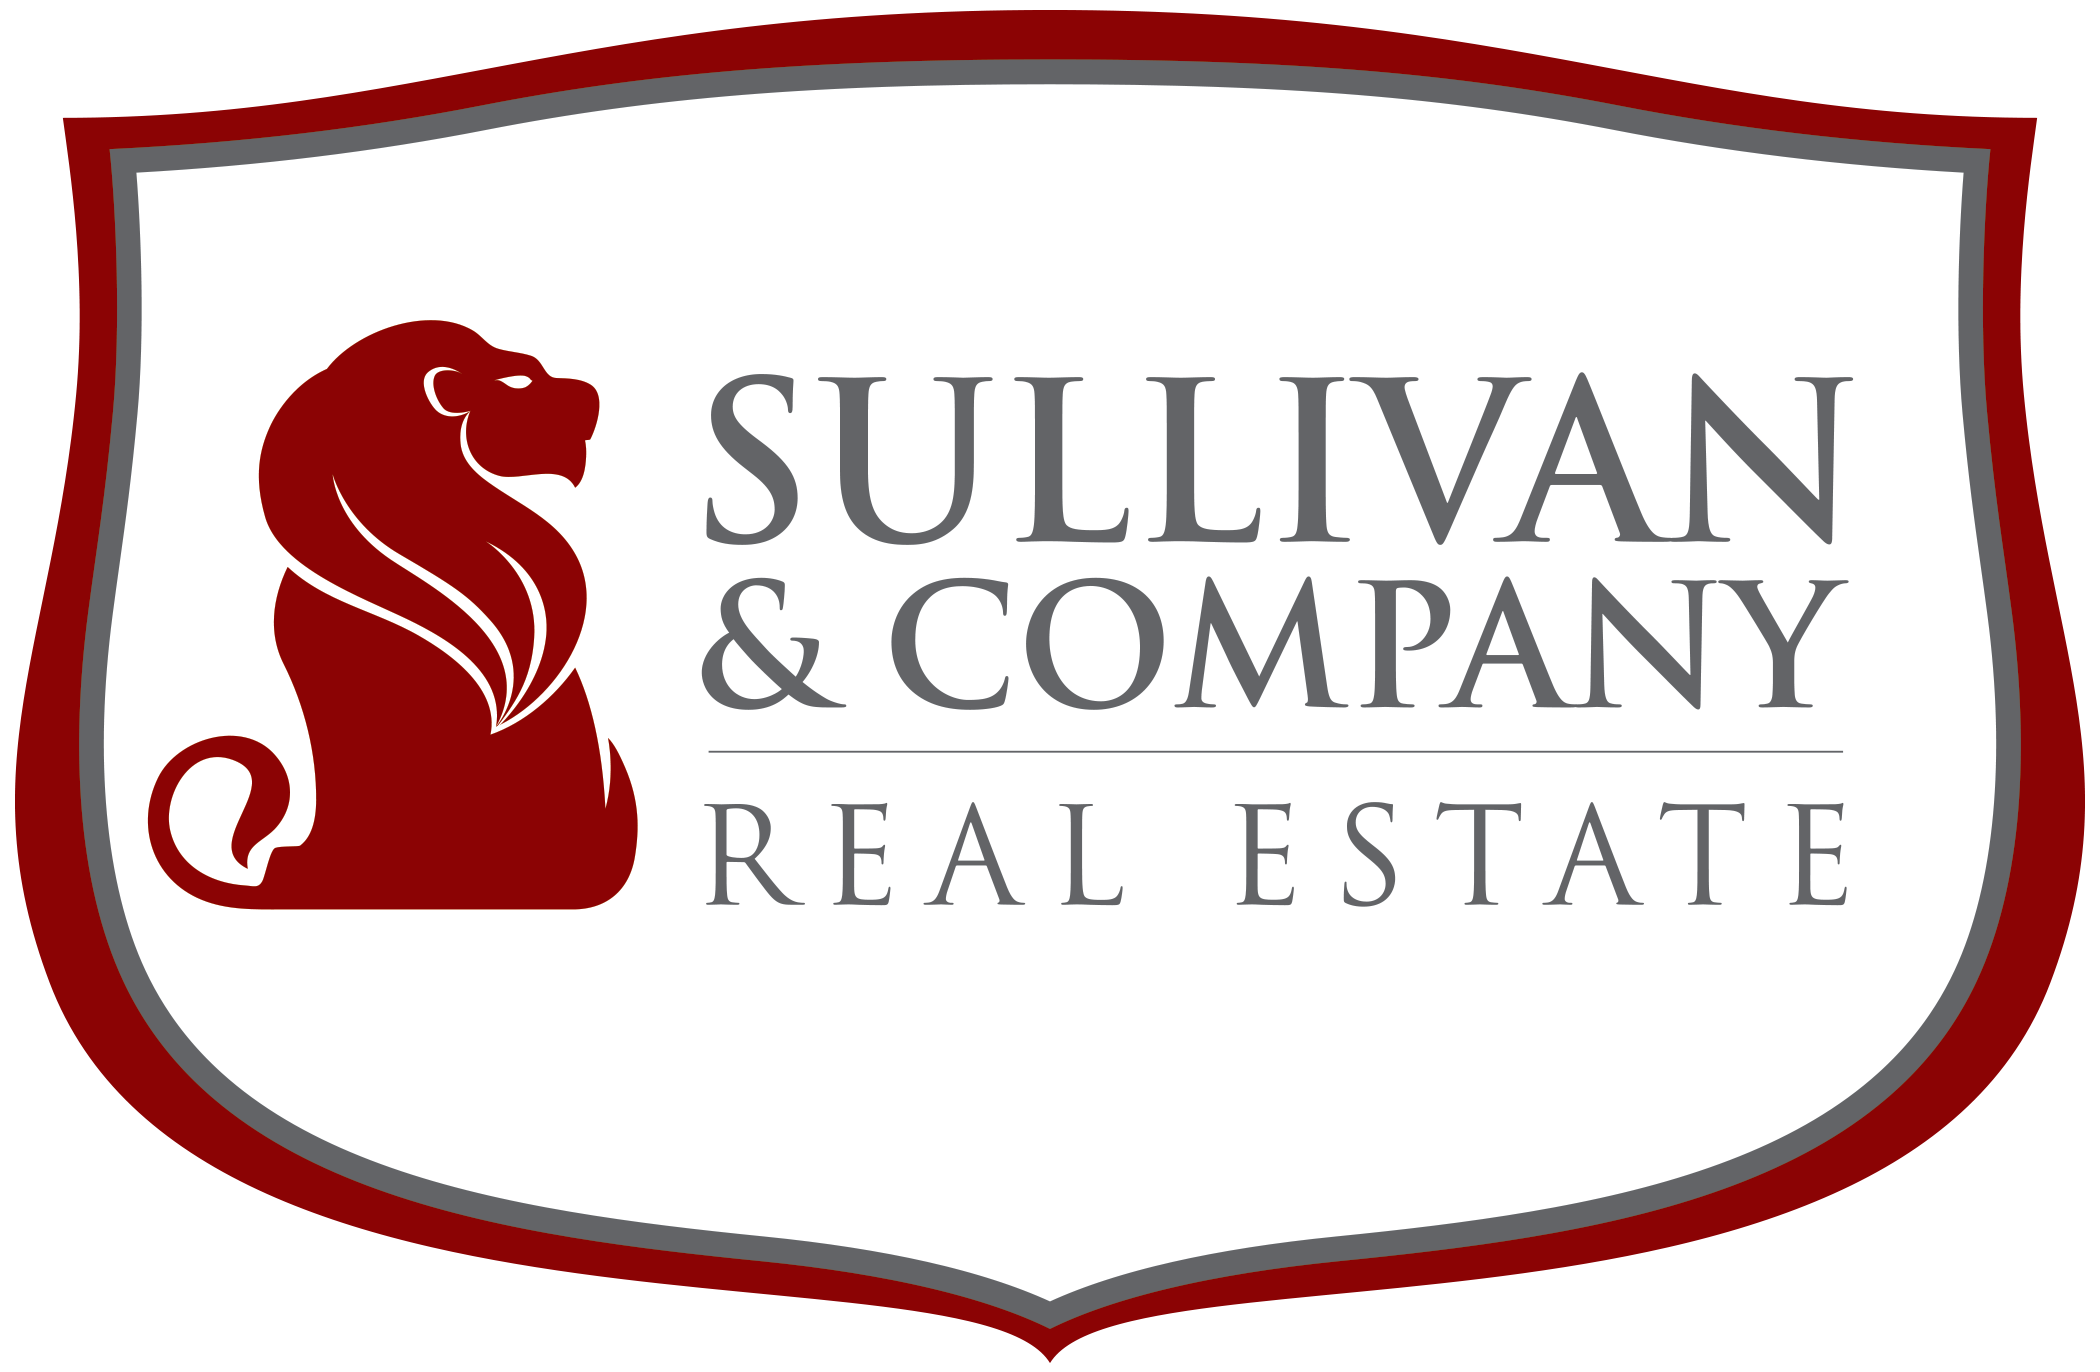 Sponsor Sullivan & Company Real Estate, INC